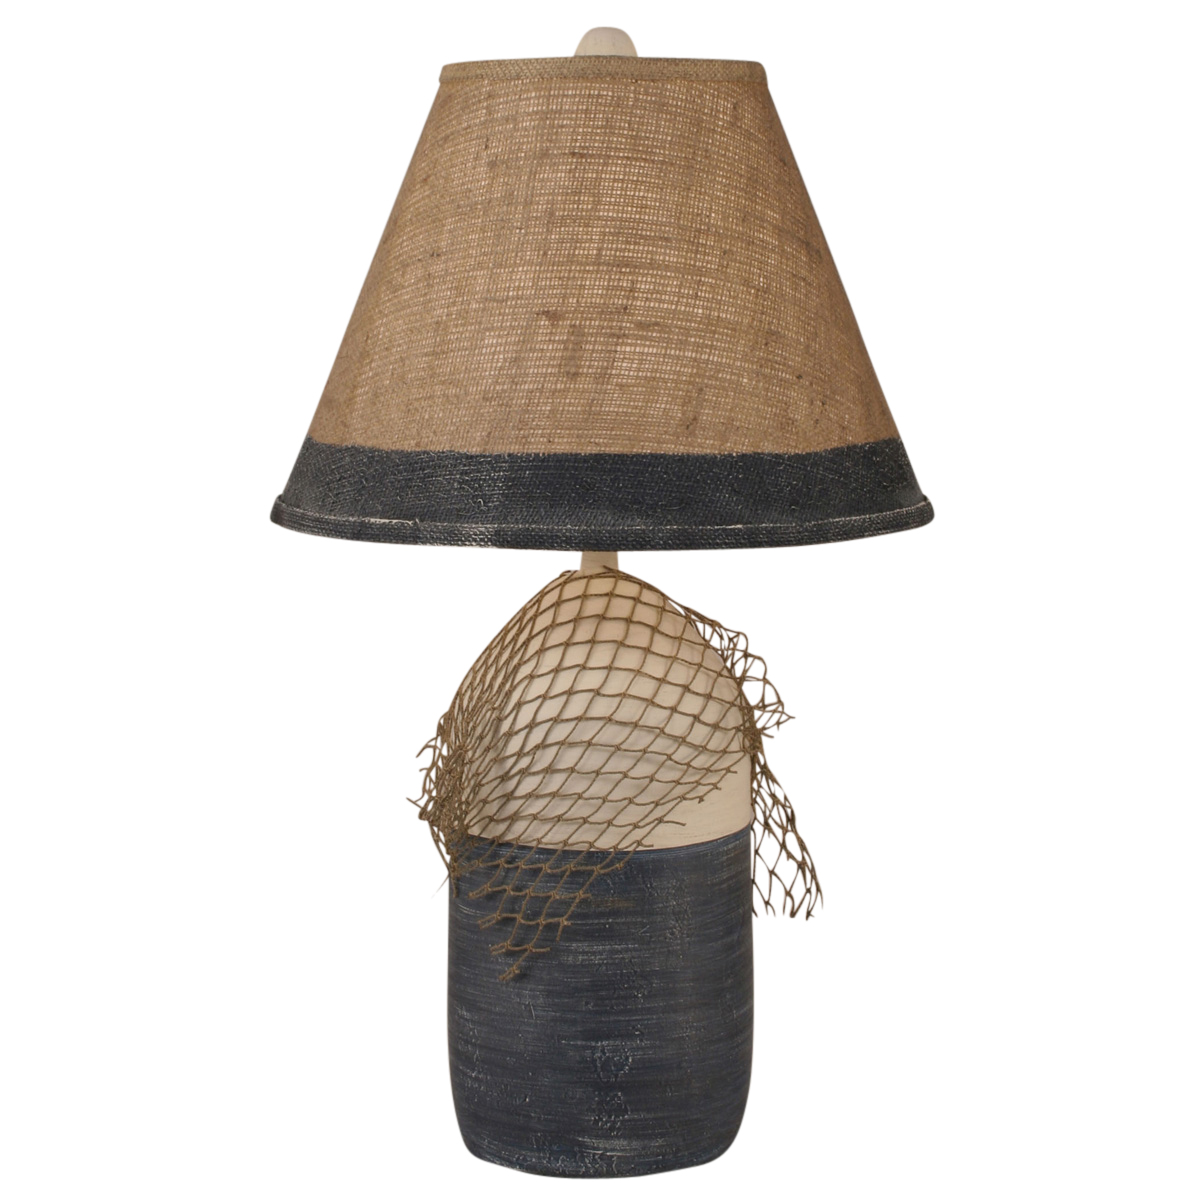 Beach Table Lamps Navy Buoy And Net Table Lamp With